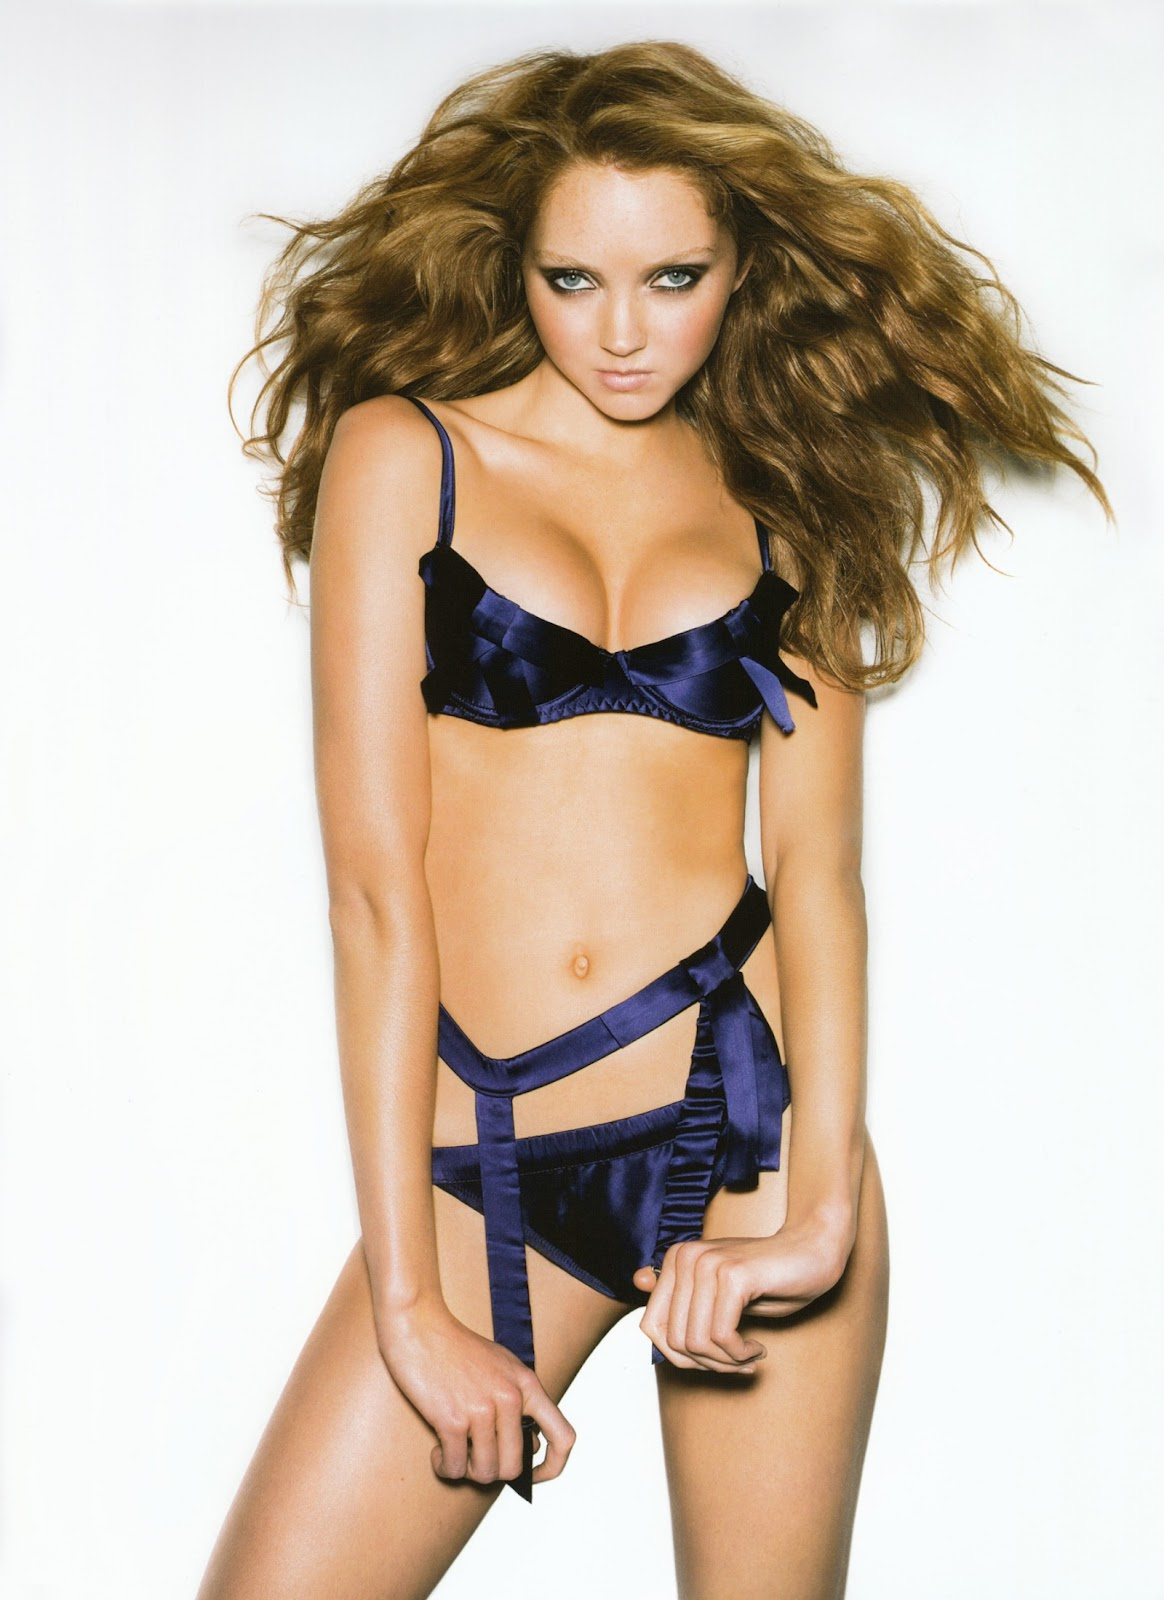 HOLLYWOOD ALL STARS: Lily Cole Hot Pictures in 2012